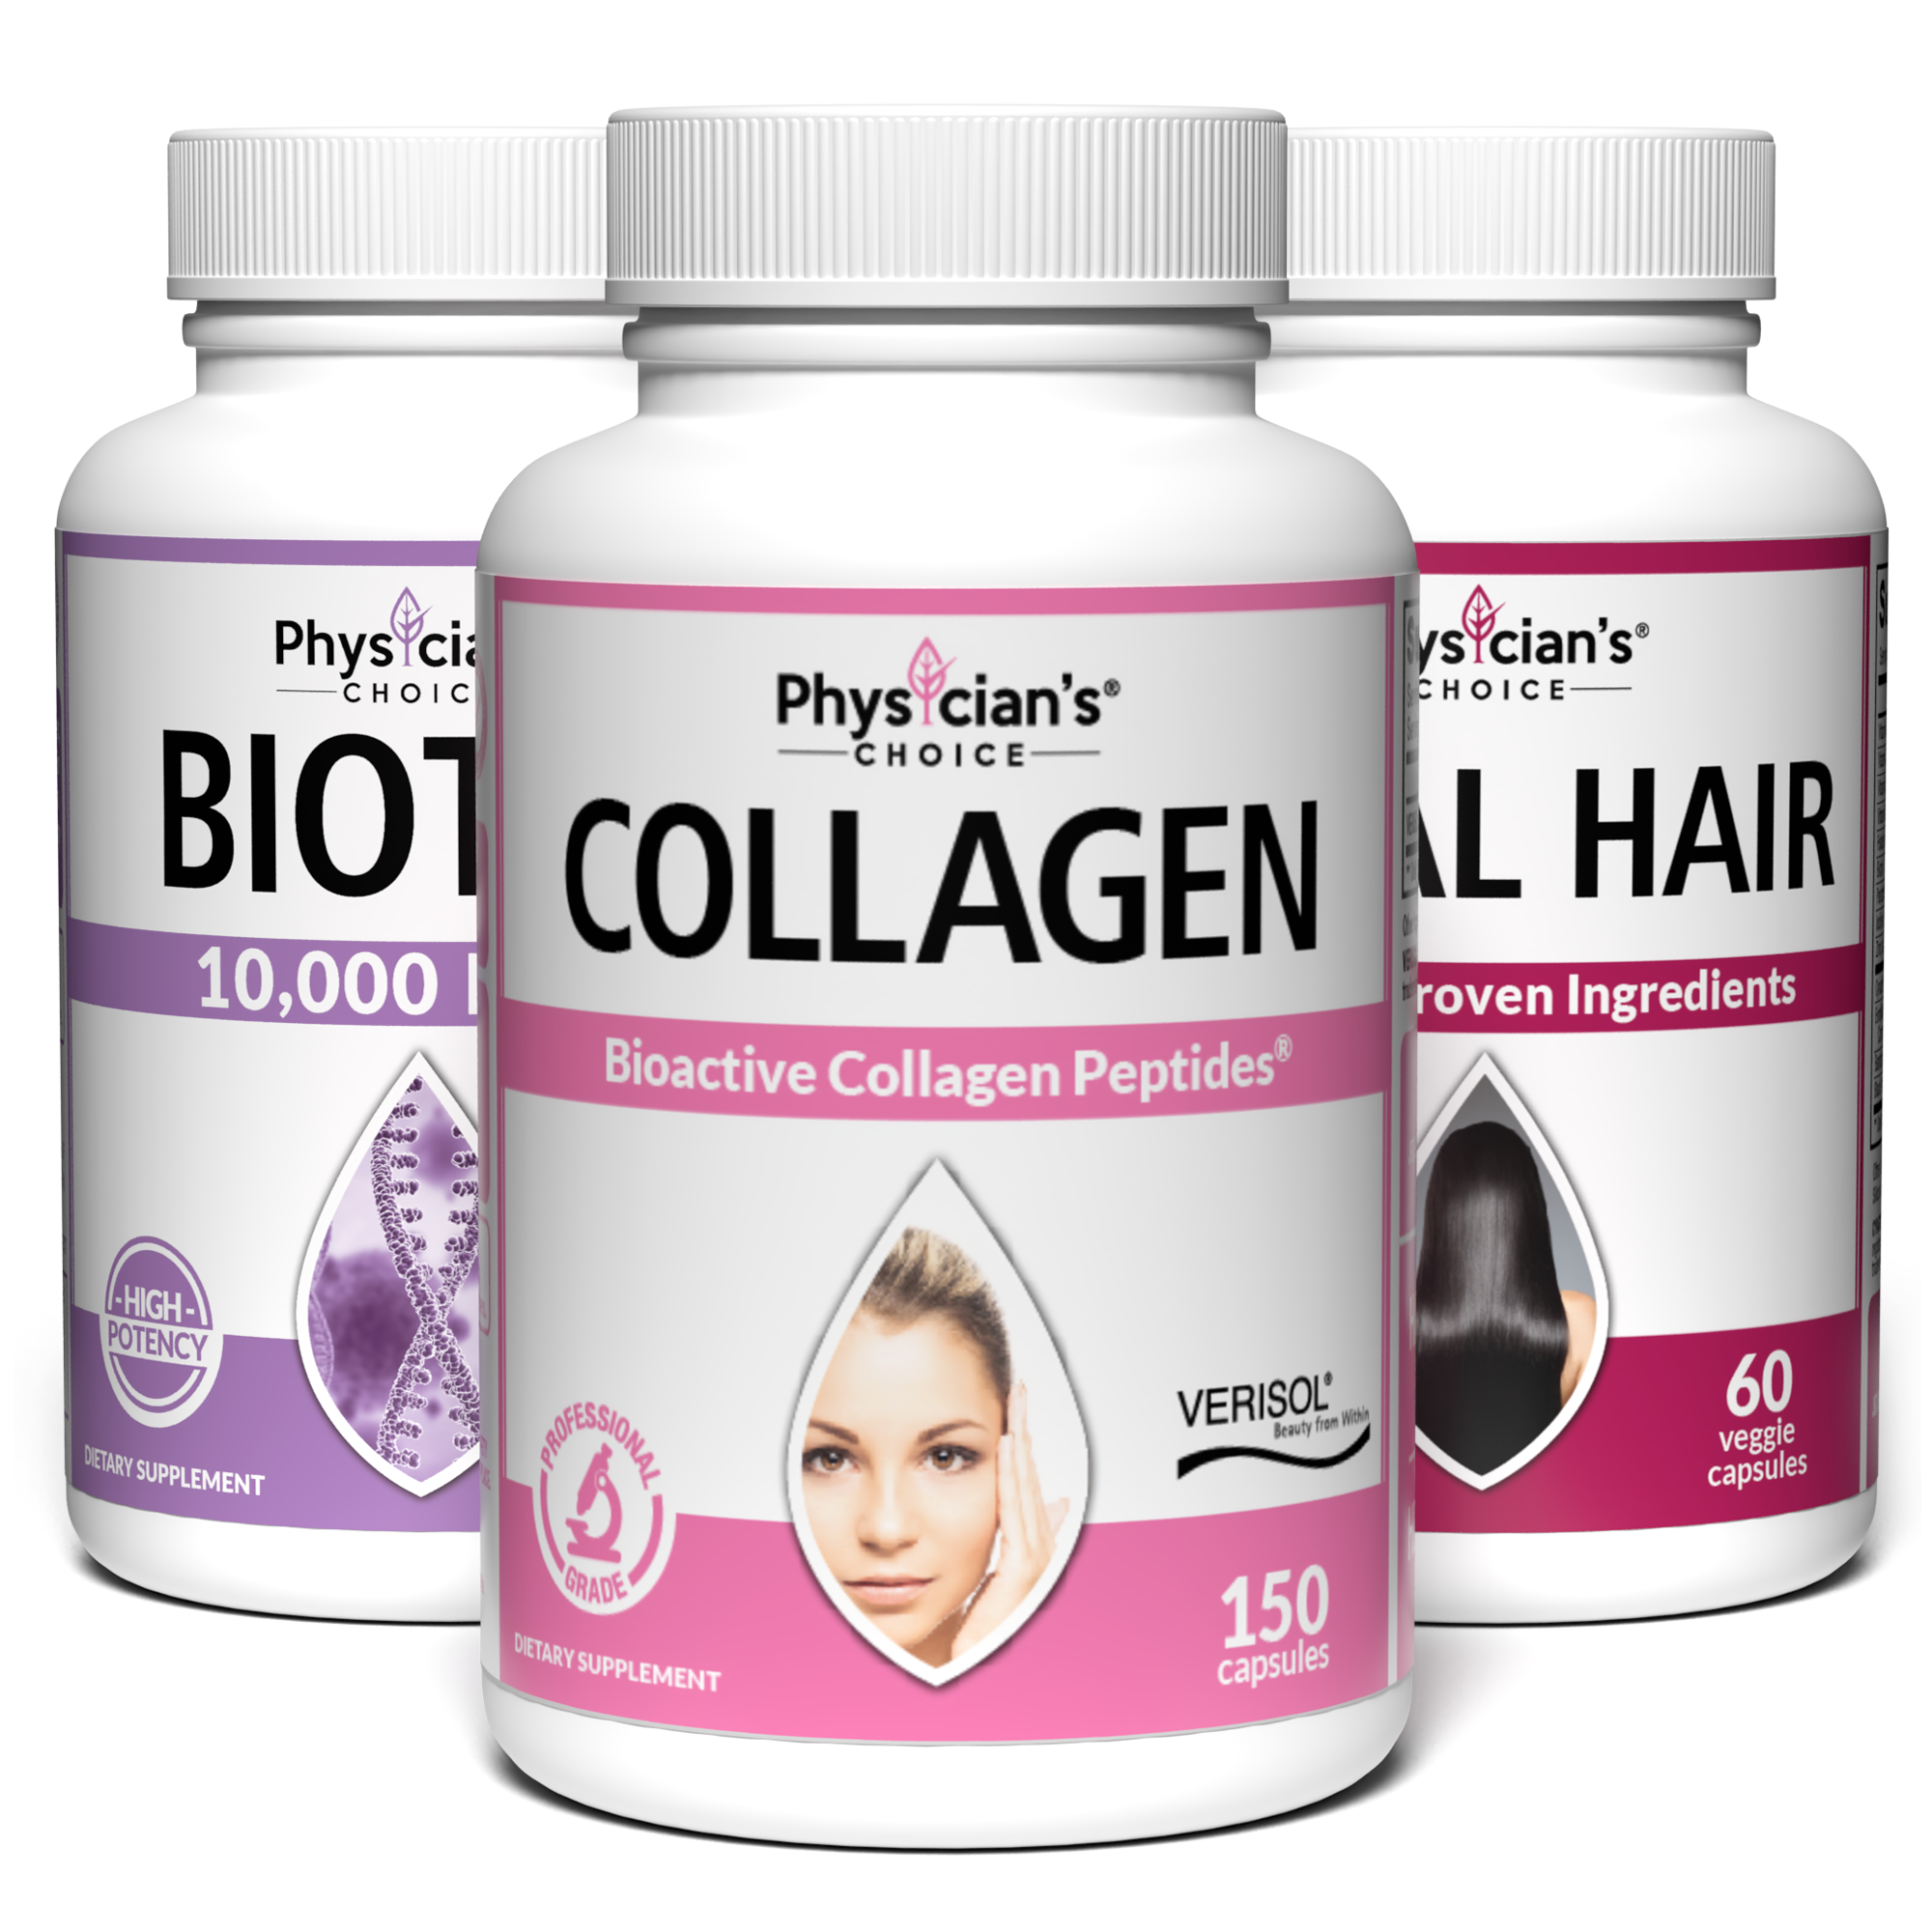 Skin, Nails and Hair Care Bundle with Biotin 10,000 mcg, Verisol Collagen, and Total Hair